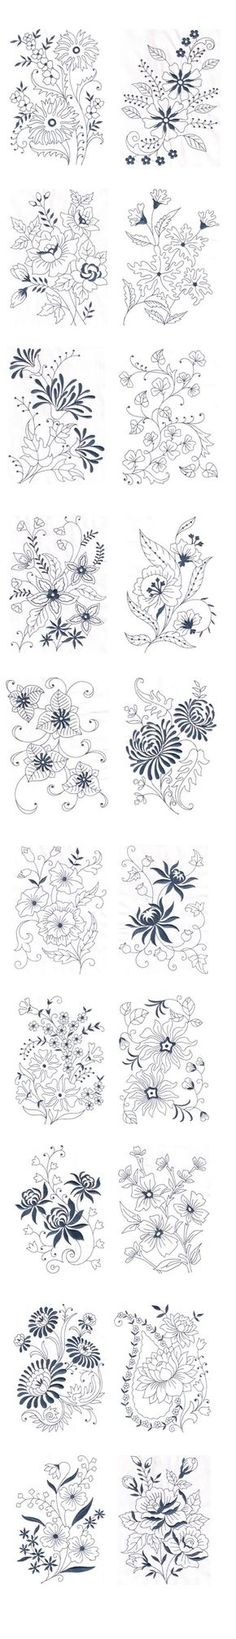 Amazing Emotions - Vintage Florals 01 Machine Embroidery Designs --- Vintage Florals 01 These fabulous vintage floral designs can add supreme beauty to your products like bed linen, bath linen, kitchen linen, curtains and even dresses. You can notice the variety in the floral designs For more details visit www.embroideryemo...